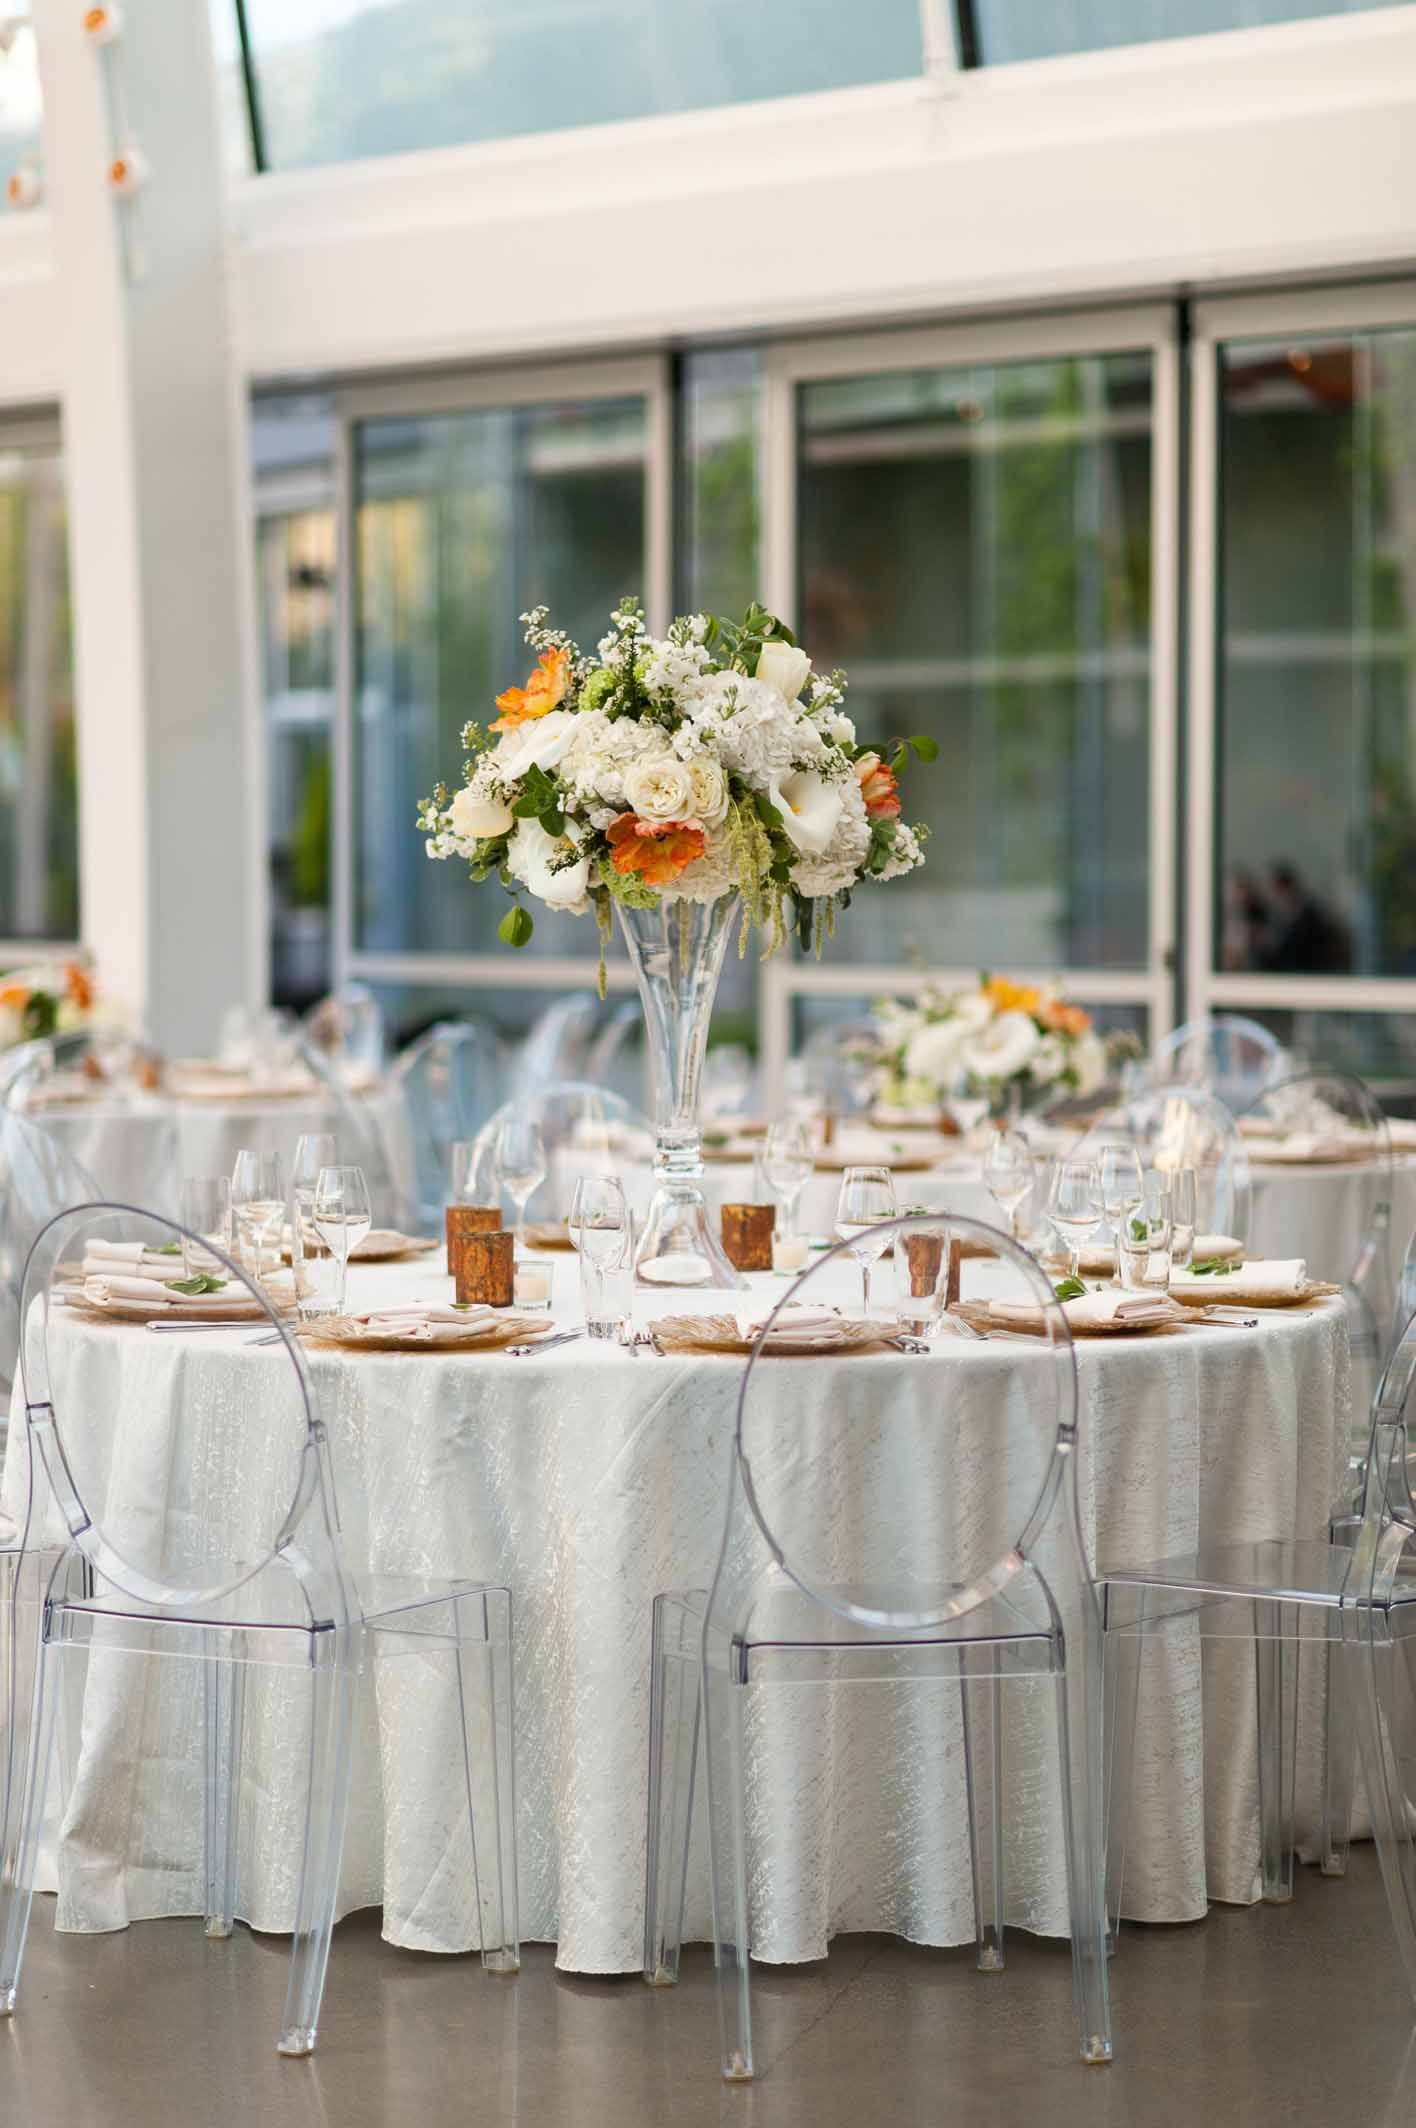 Wedding reception table with white linen, clear lucite chairs, tall centerpiece with orange and white flowers on tall crystal vase